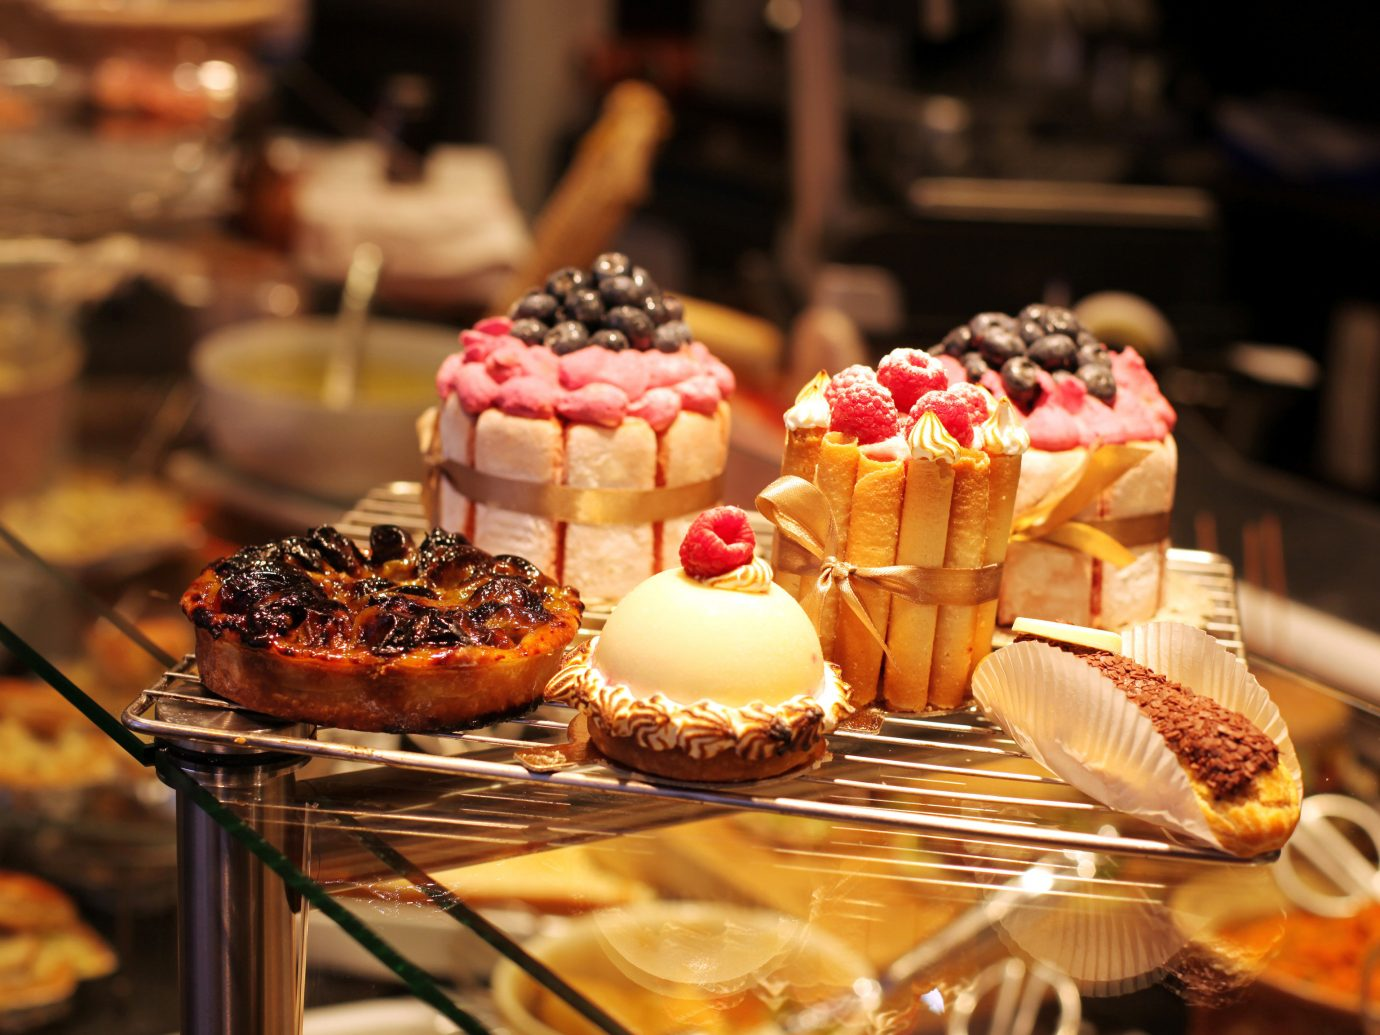 Food + Drink indoor table meal food dessert pâtisserie buffet brunch breakfast sweetness pastry baking flavor